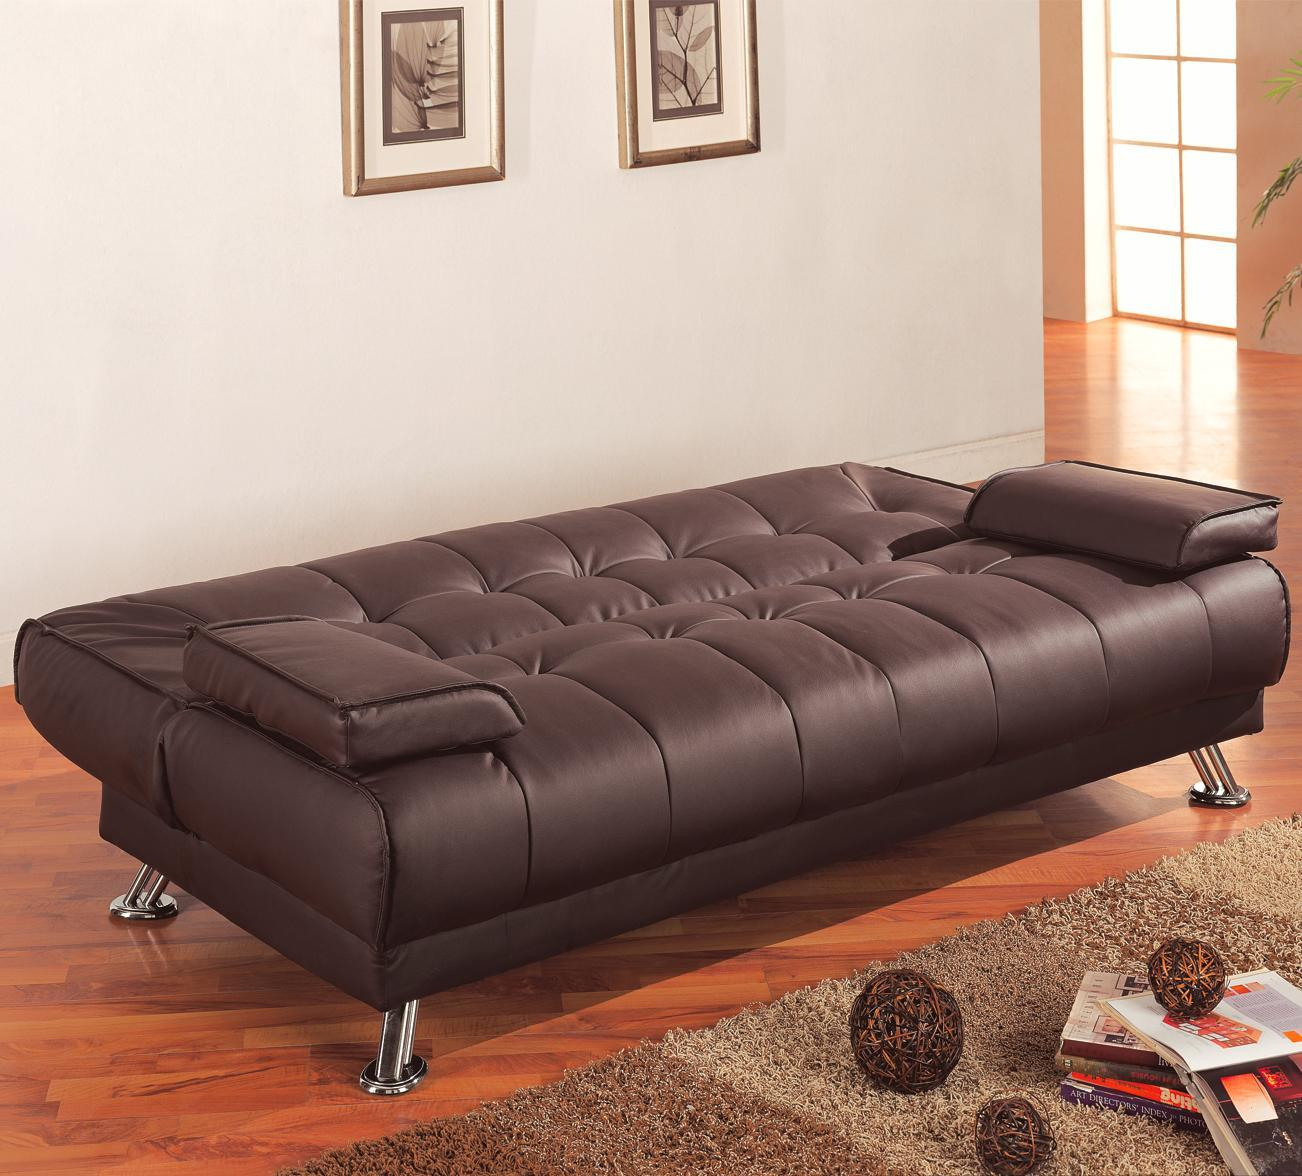 coaster home furnishings casual sofa bed amazon    coaster futon sofa bed with removable arm rests brown      rh   amazon